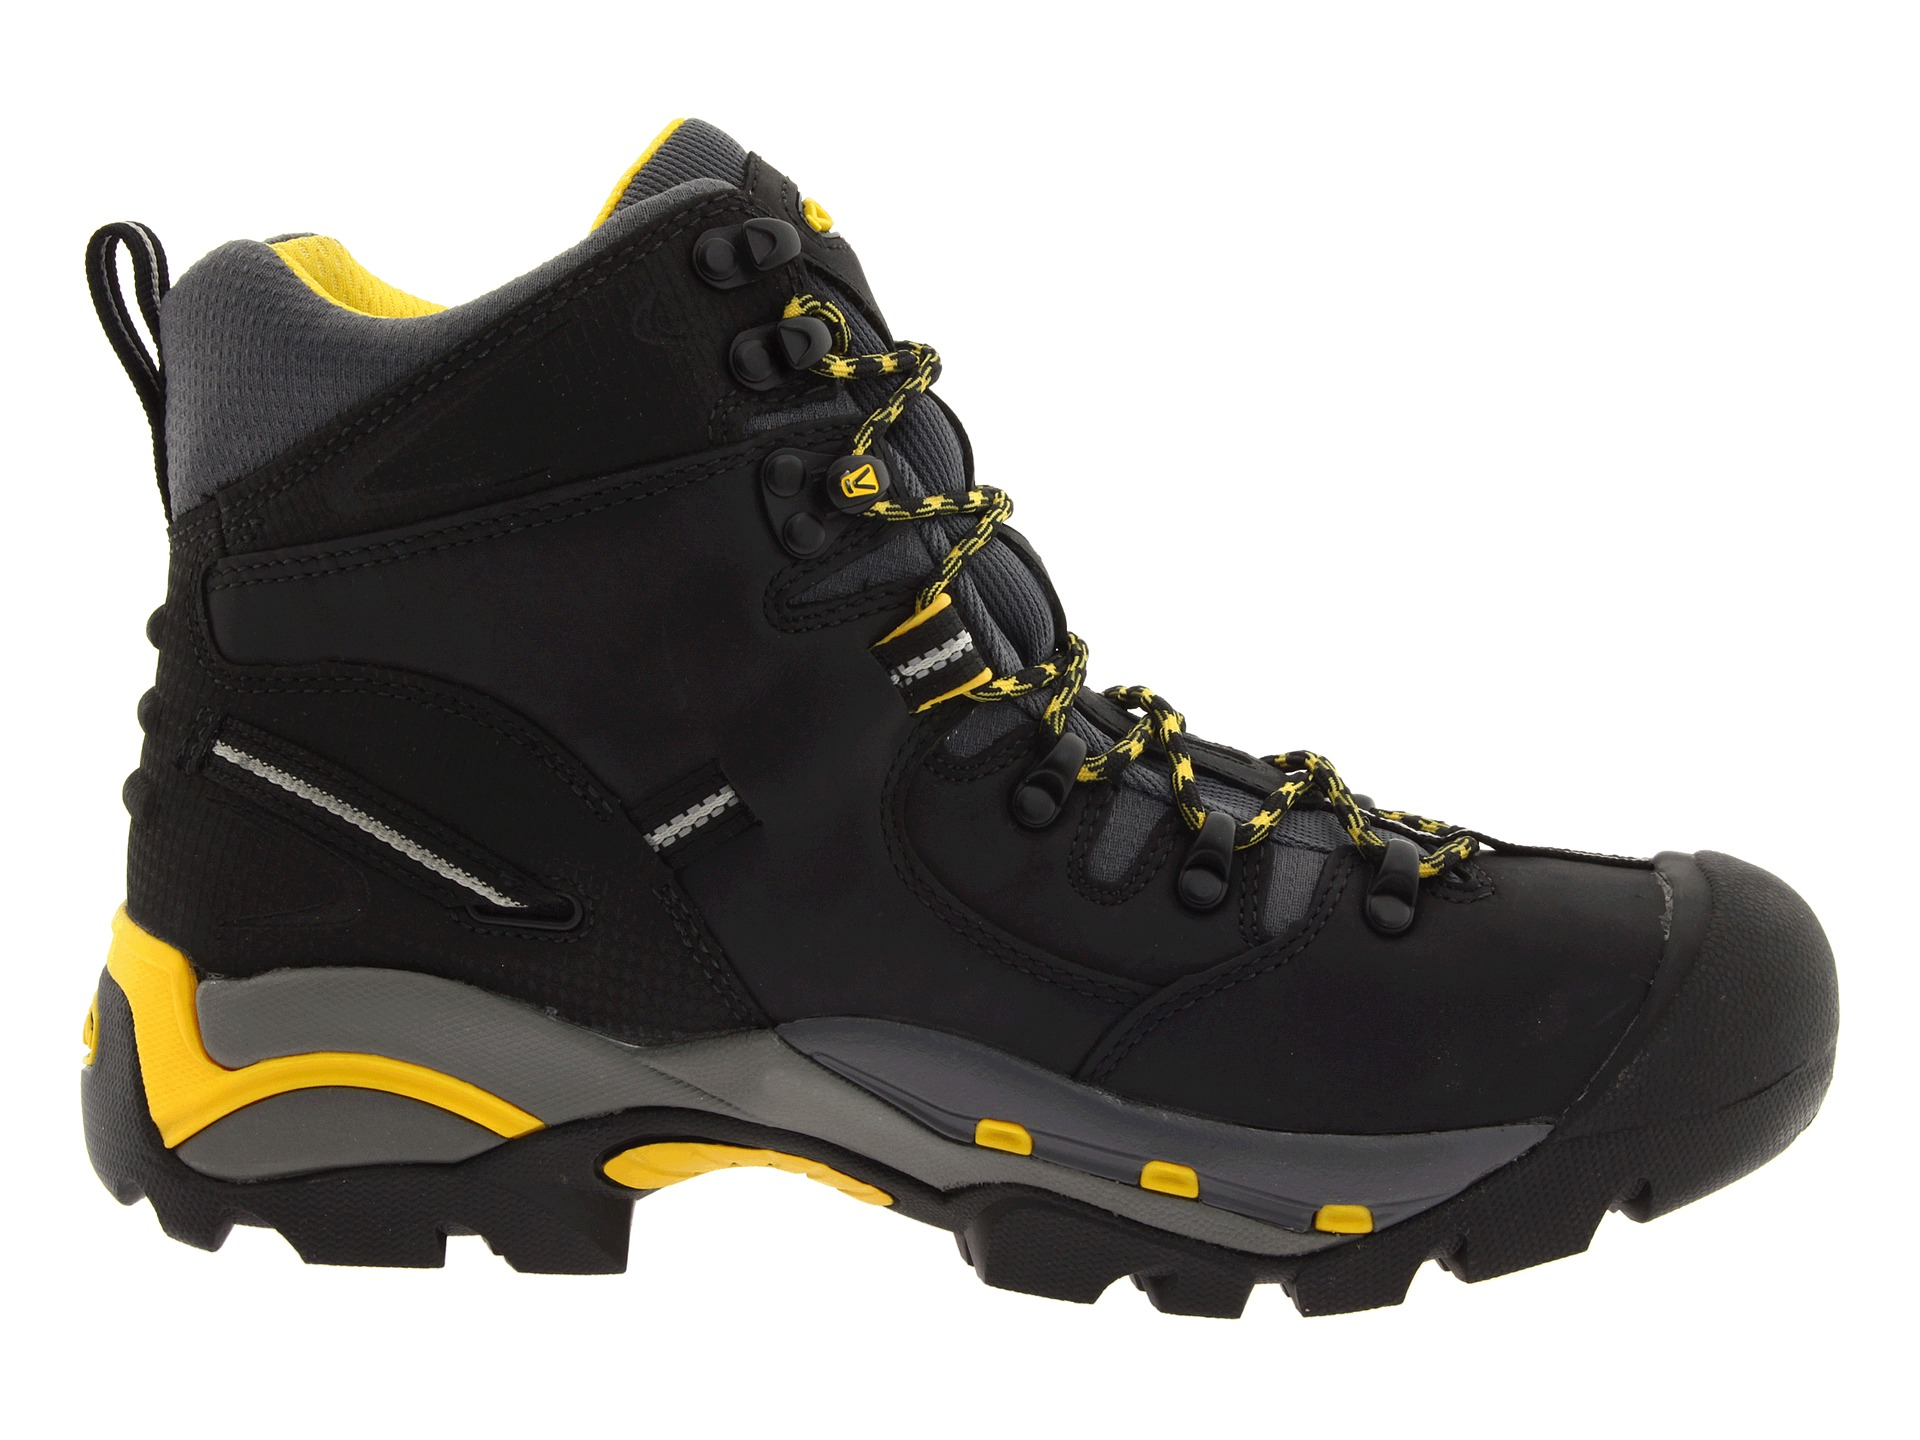 Jul 04, · The KEEN Utility Pittsburgh steel toe hiking boots offer ground-breaking style and hybrid performance that'll take you from rocky terrain to the mean streets of the urban jungle. A click of your mouse will add this KEEN Utility footwear to your cart, and we'll do the rest.4/5(8).